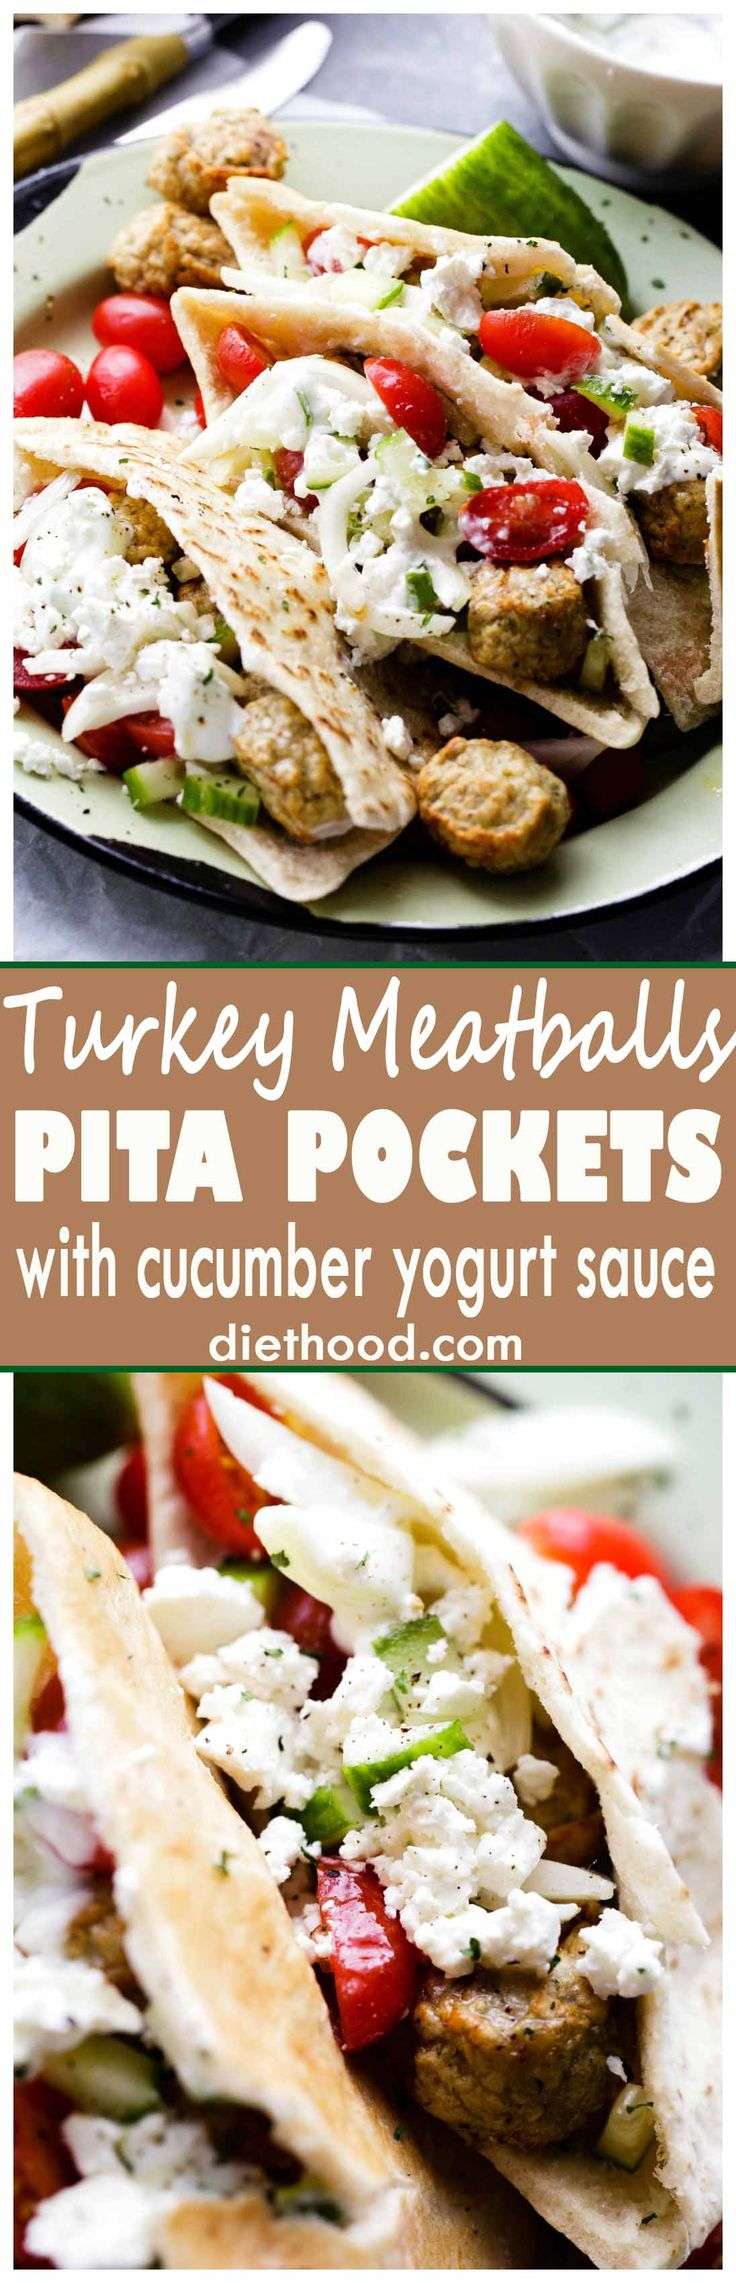 Turkey Meatballs Pita Pockets with Cucumber Yogurt Sauce – Juicy and delicious turkey meatballs served in warm pita pockets filled with a garlicky cucumber sauce and topped with a tomatoes and feta cheese salad.